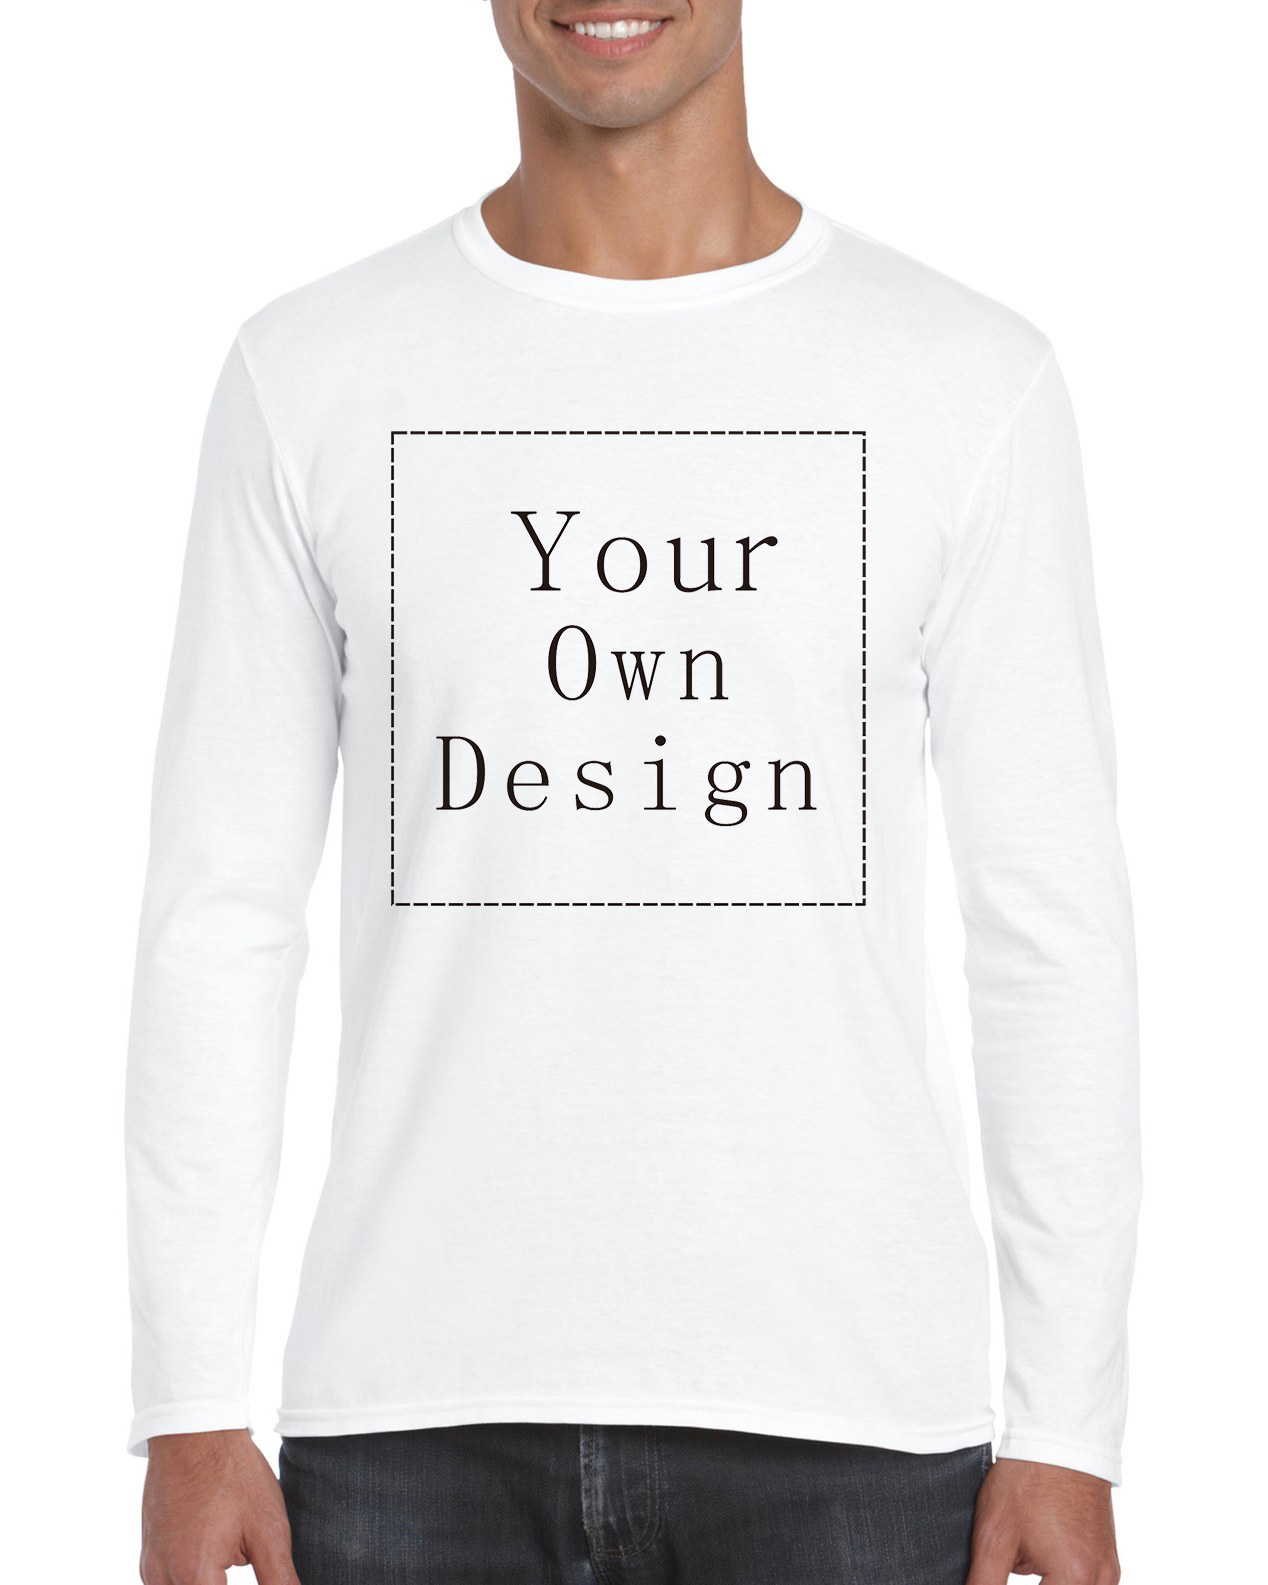 Design your own t-shirt and sell online